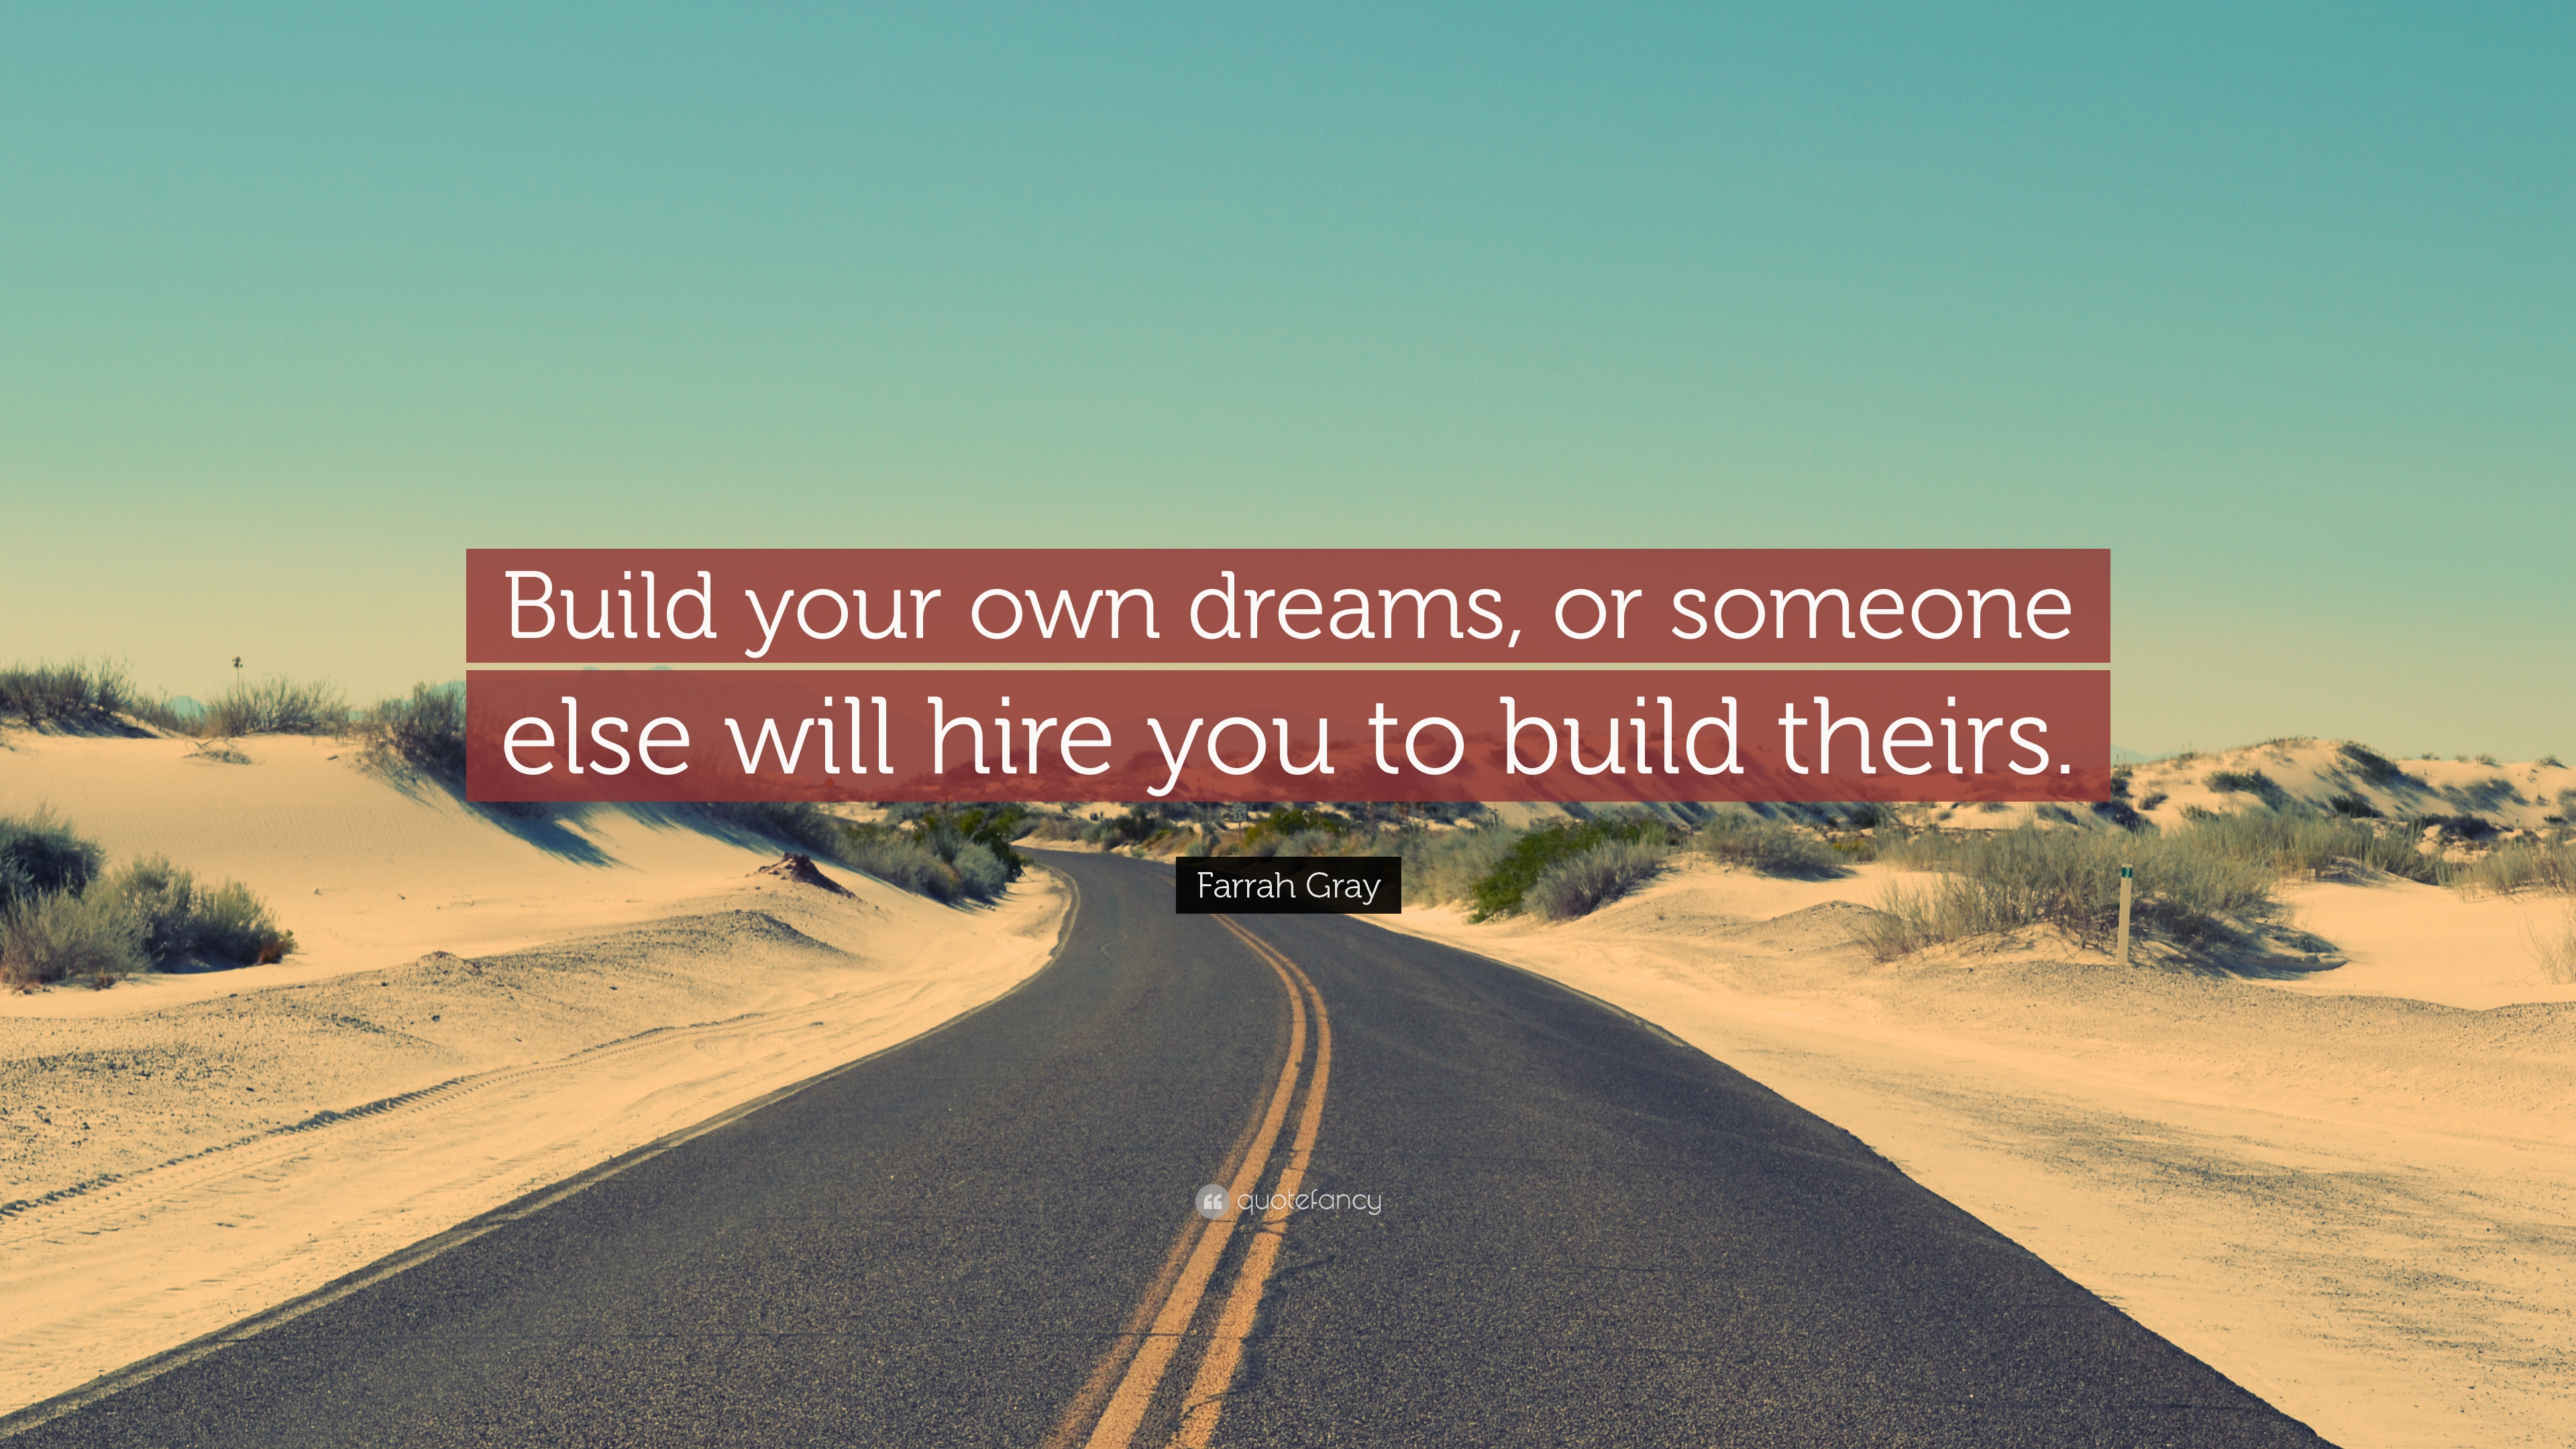 Farrah Gray Quote: U201cBuild Your Own Dreams, Or Someone Else Will Hire You